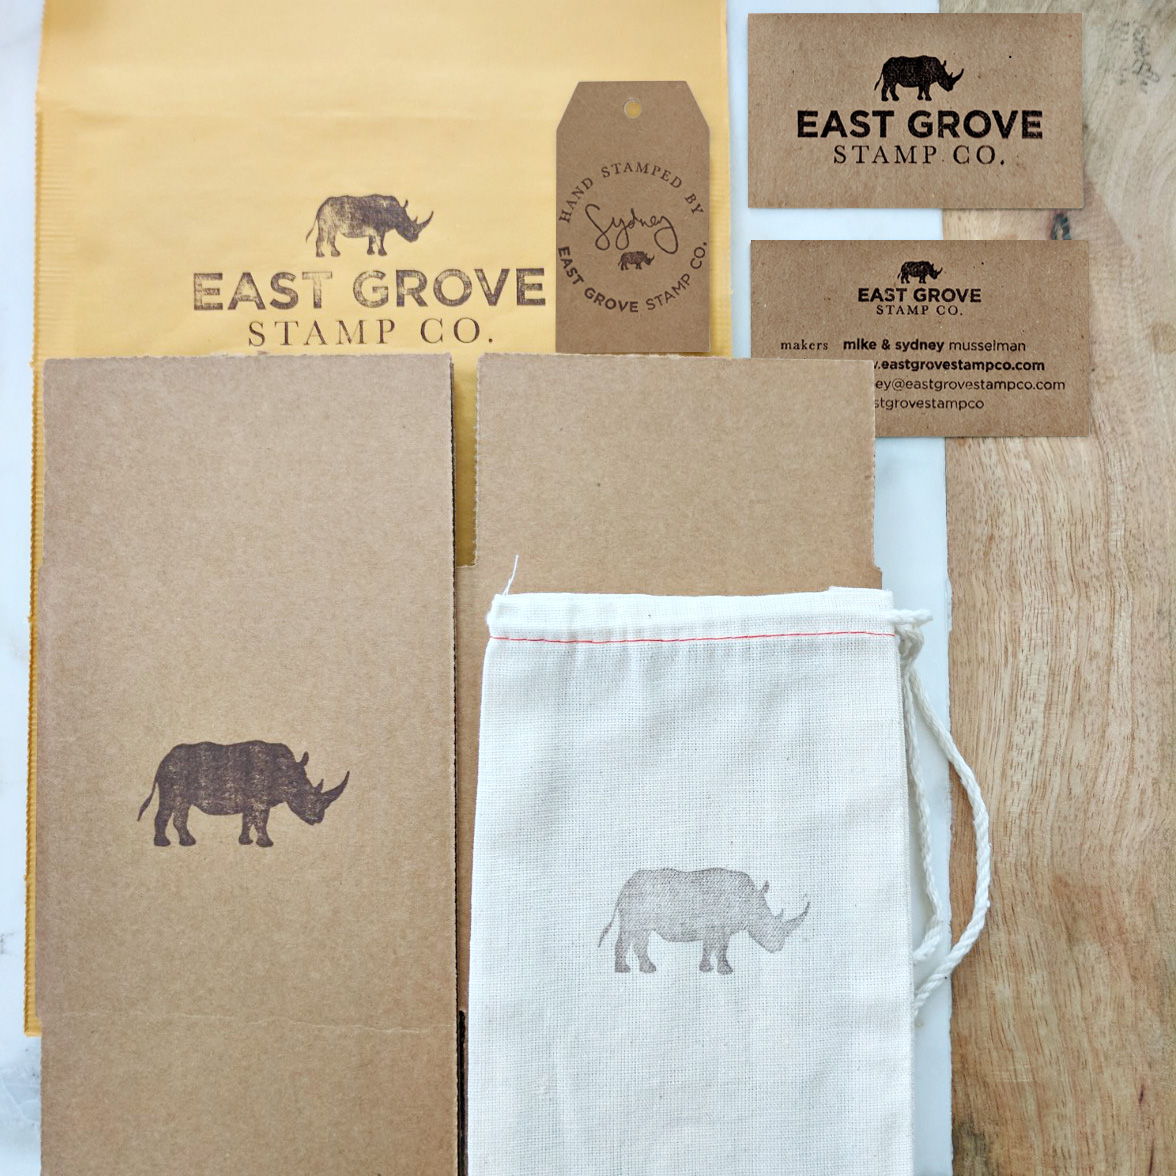 Hand stamping your product packaging is a great way for a small business to add impact to their shipments.